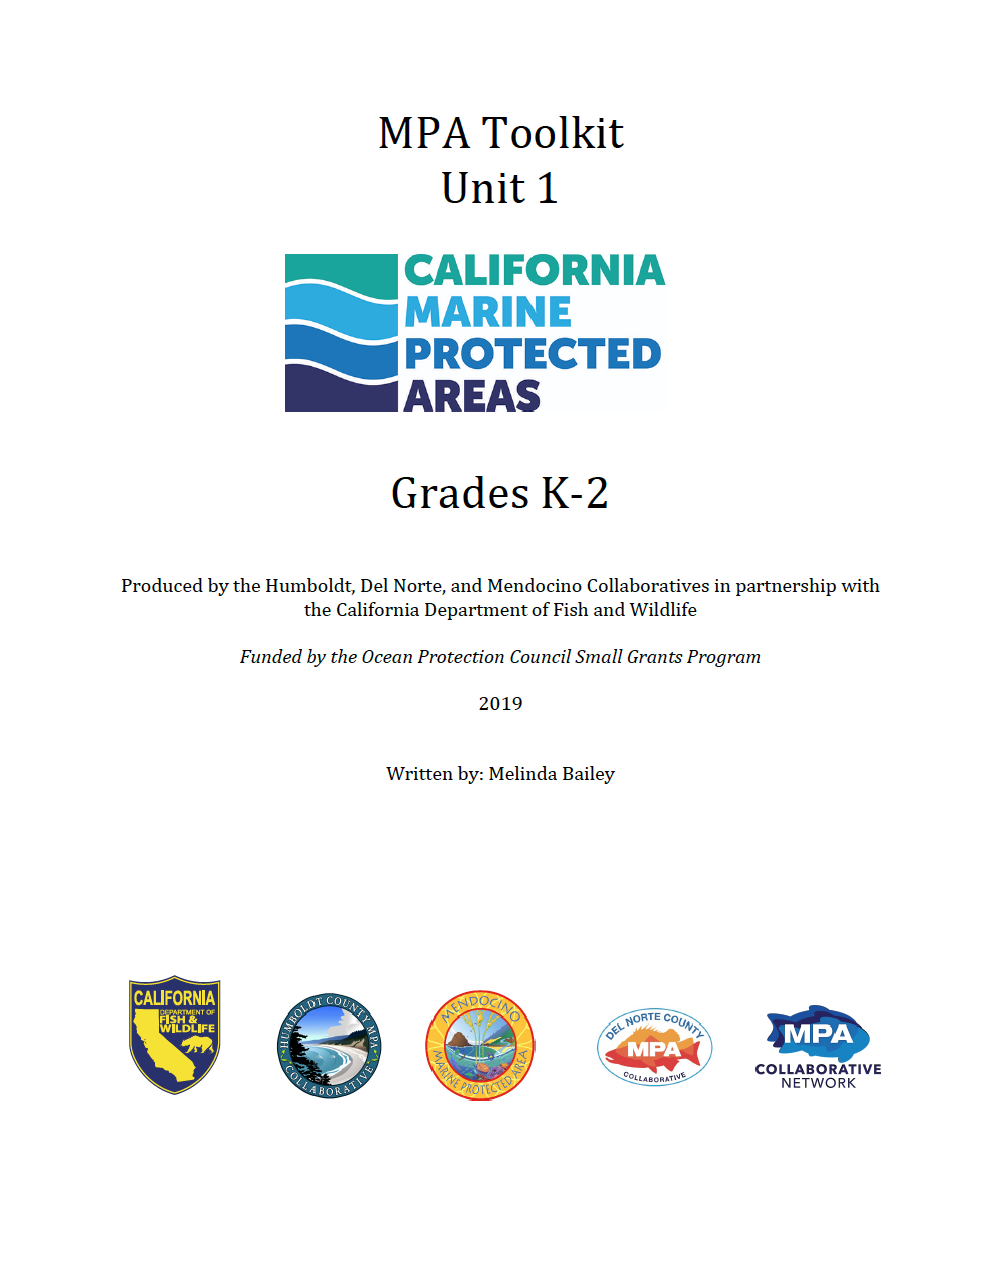 MPA Teacher Toolkit Unit 1: Grades K-2